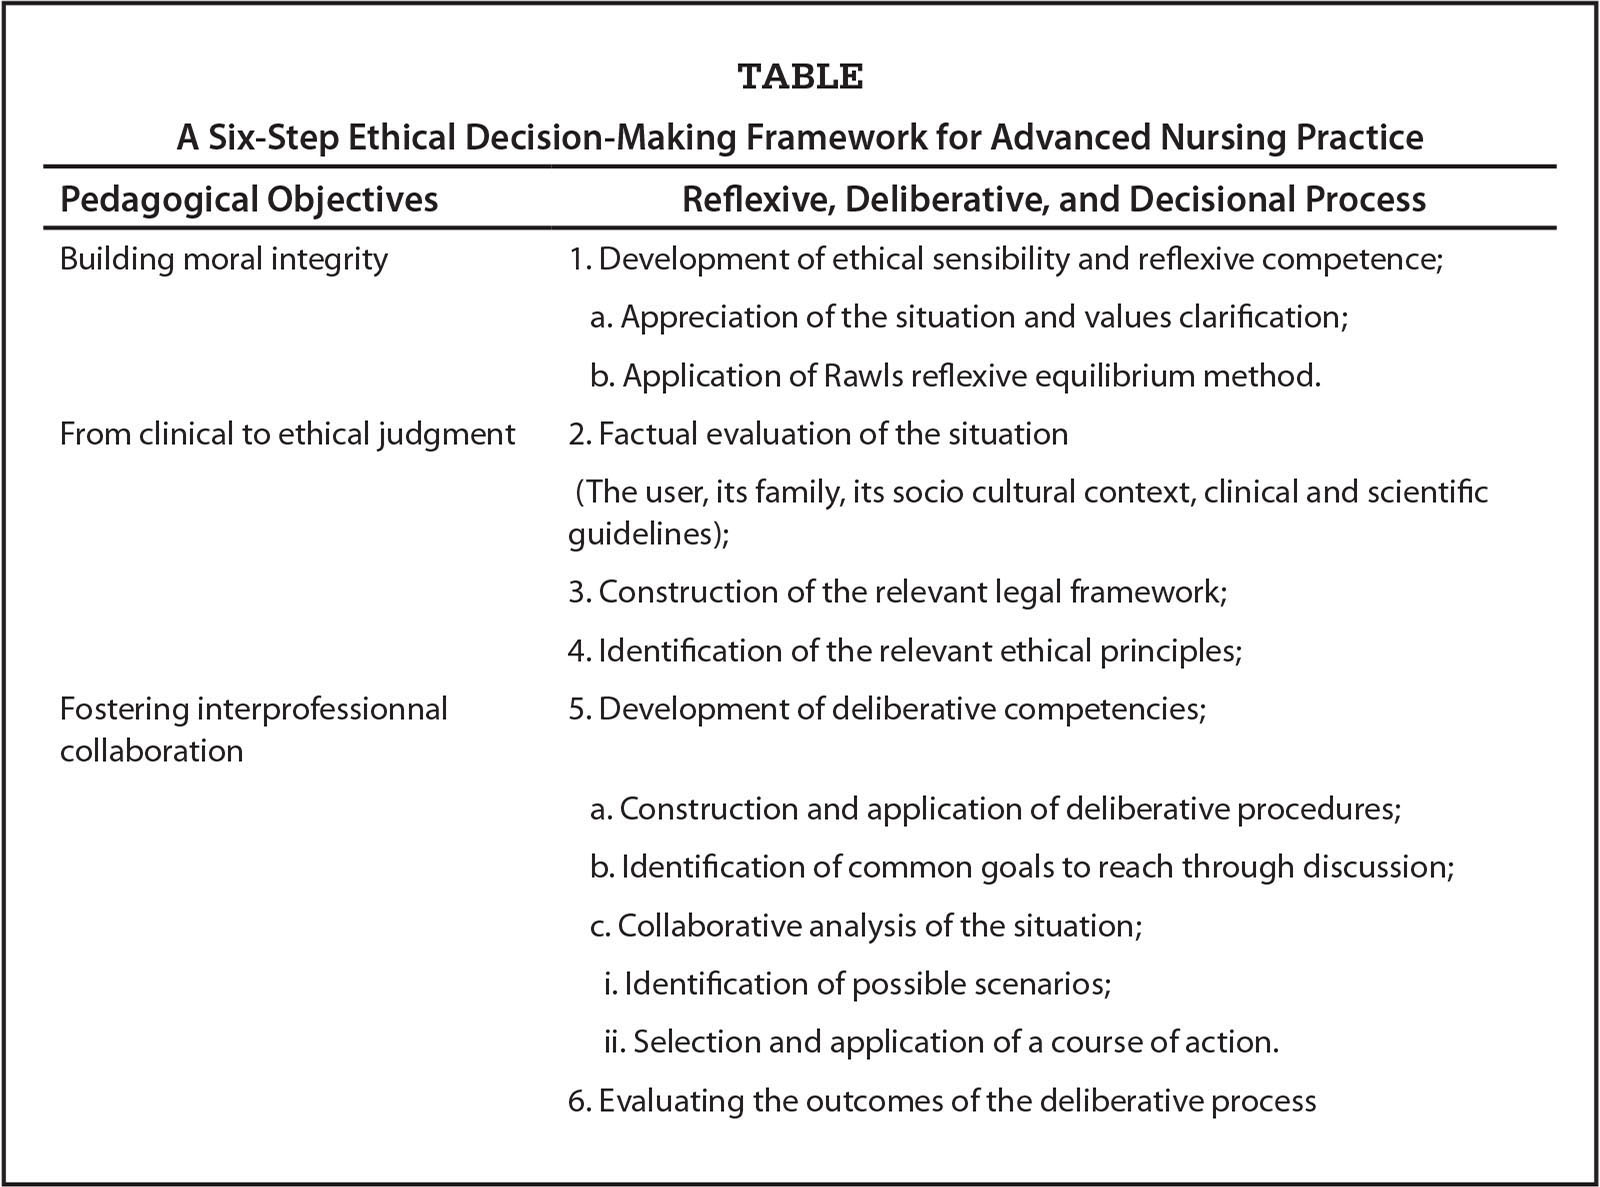 A Six-Step Ethical Decision-Making Framework for Advanced Nursing Practice